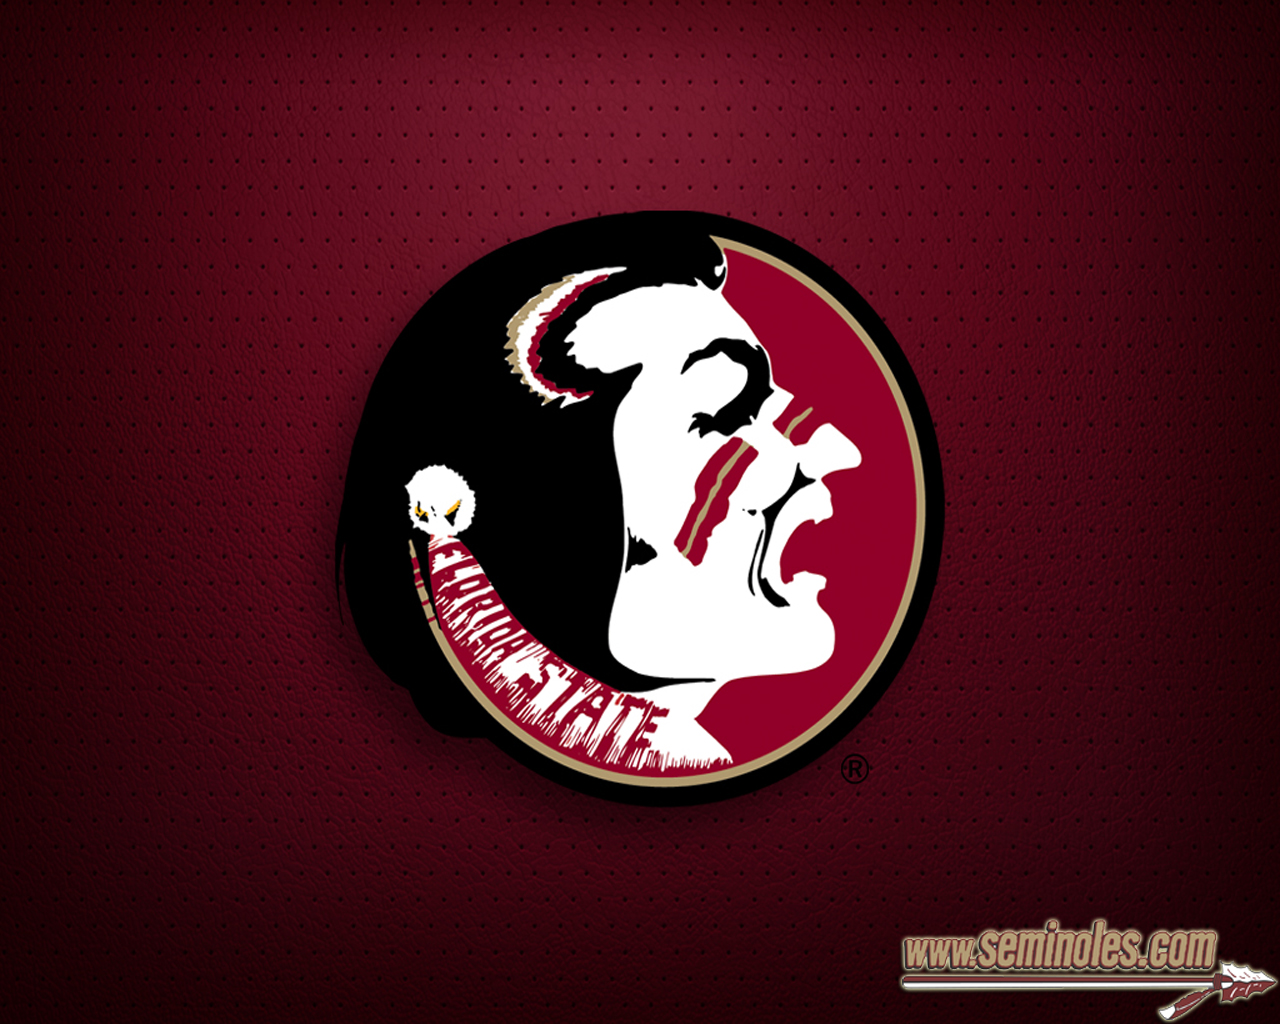 Free florida state seminoles wallpaper wallpapersafari state baseball florida state garnet wallpaper florida state gold voltagebd Choice Image